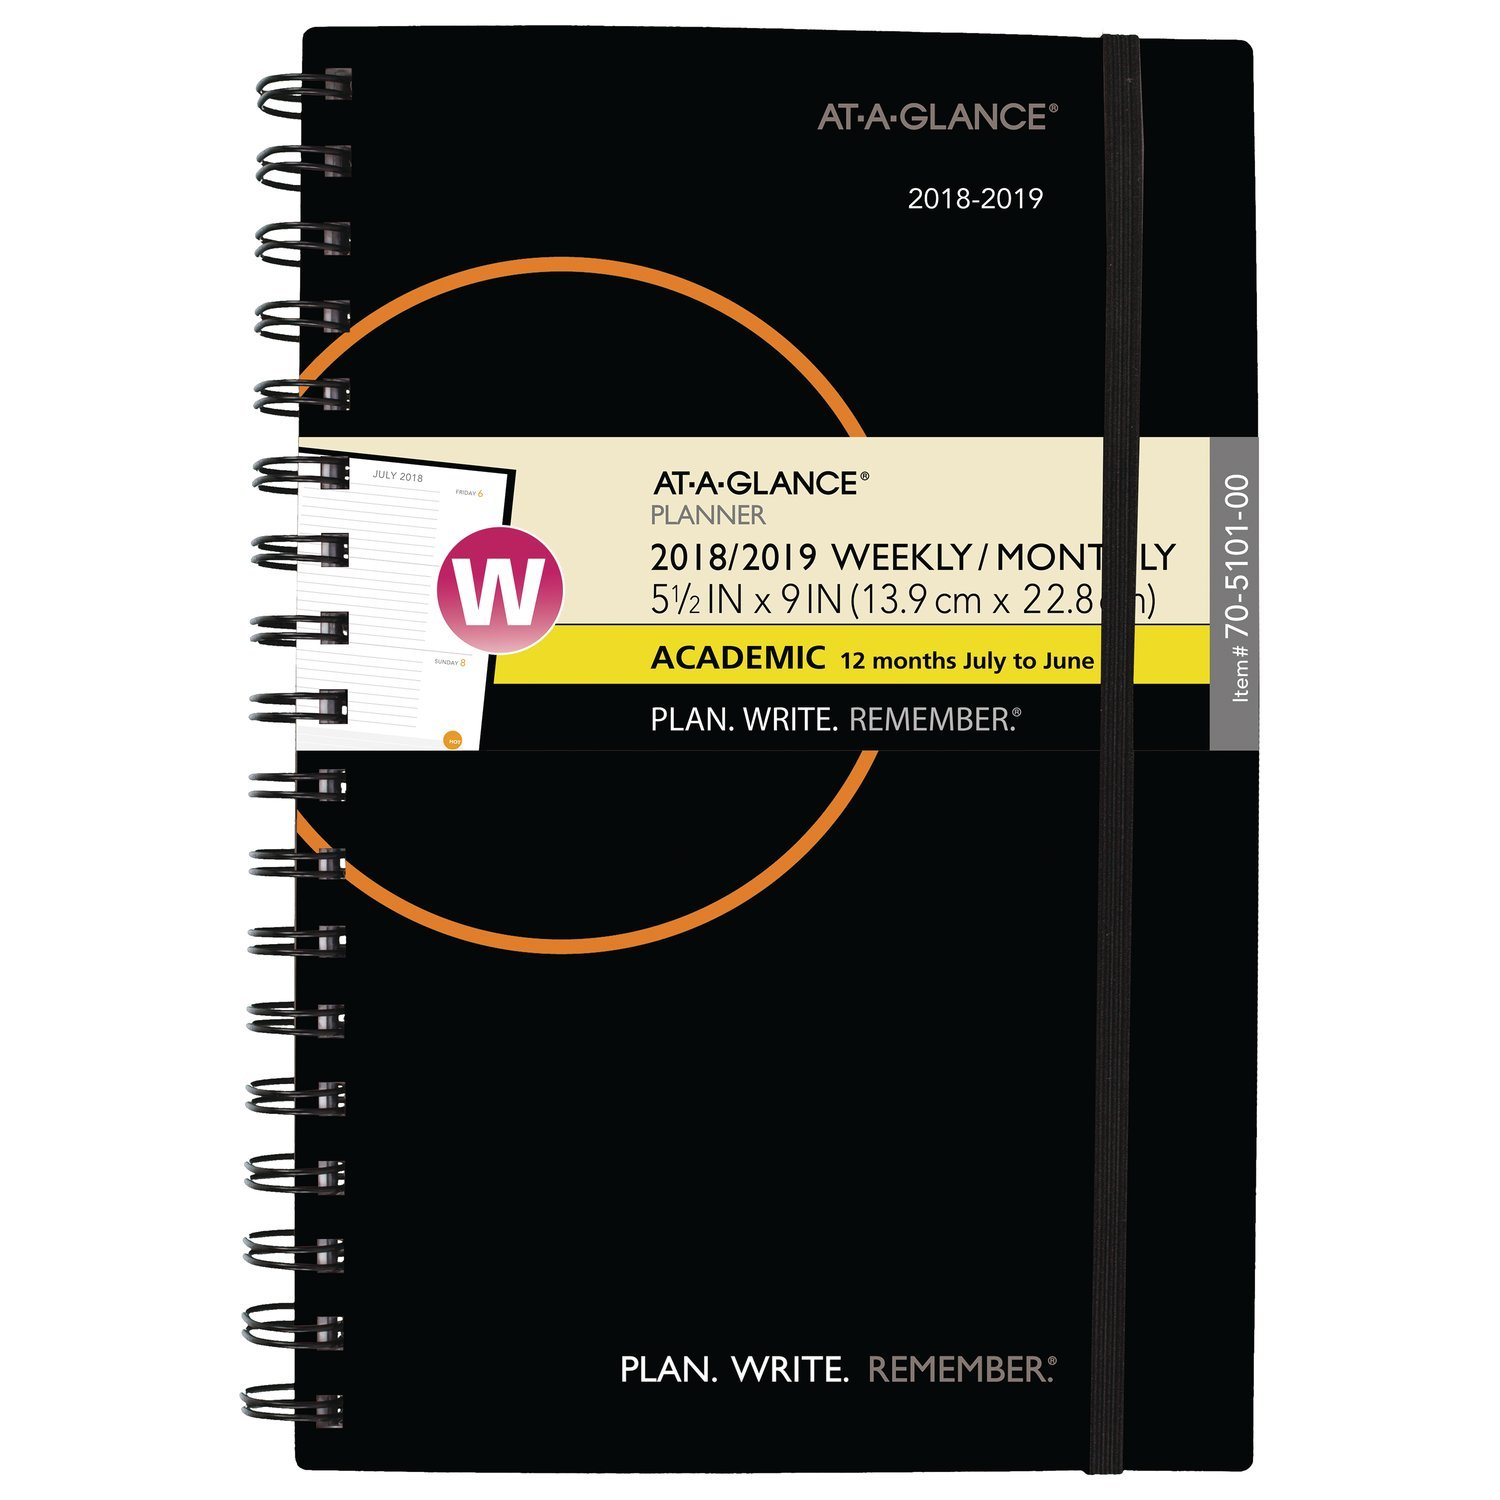 amazon at a glance academic weekly monthly planner 予定帳 7月2018